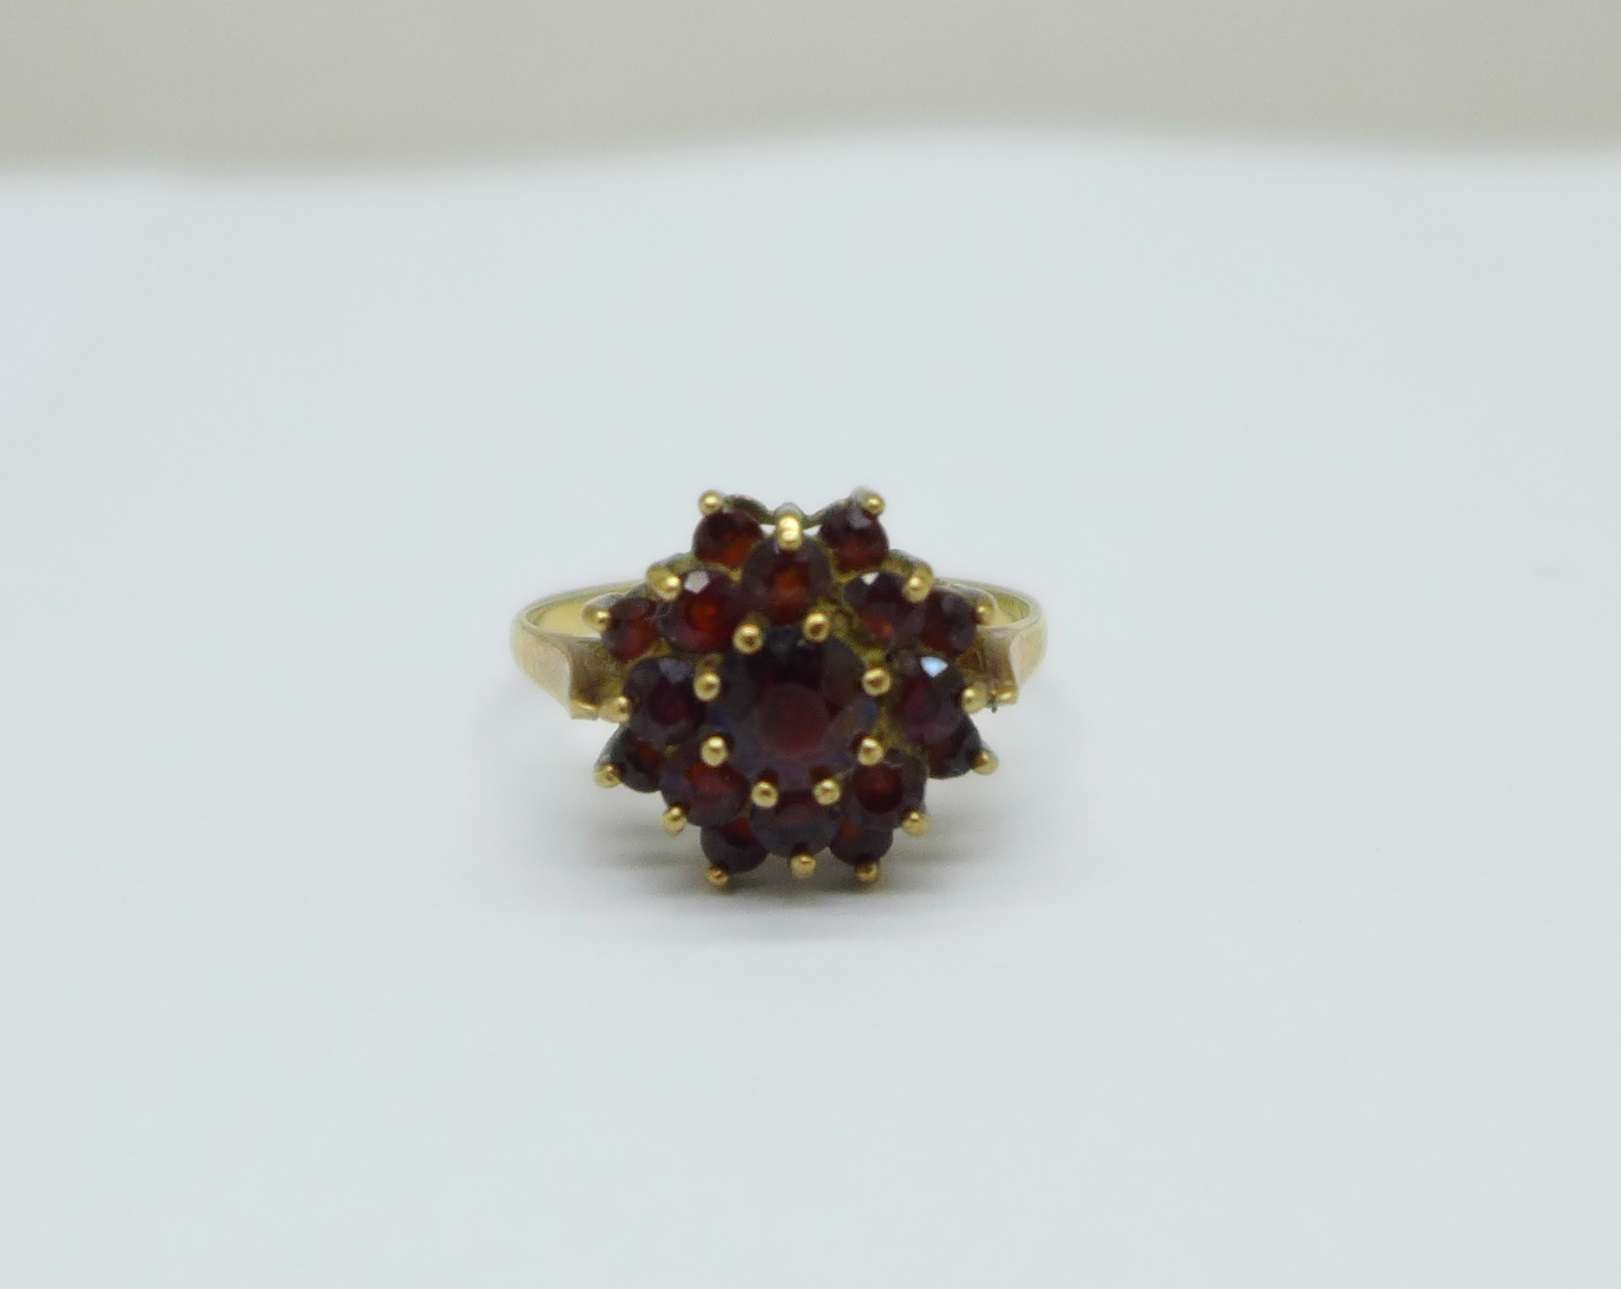 A 9ct gold and garnet ring, 2g, K